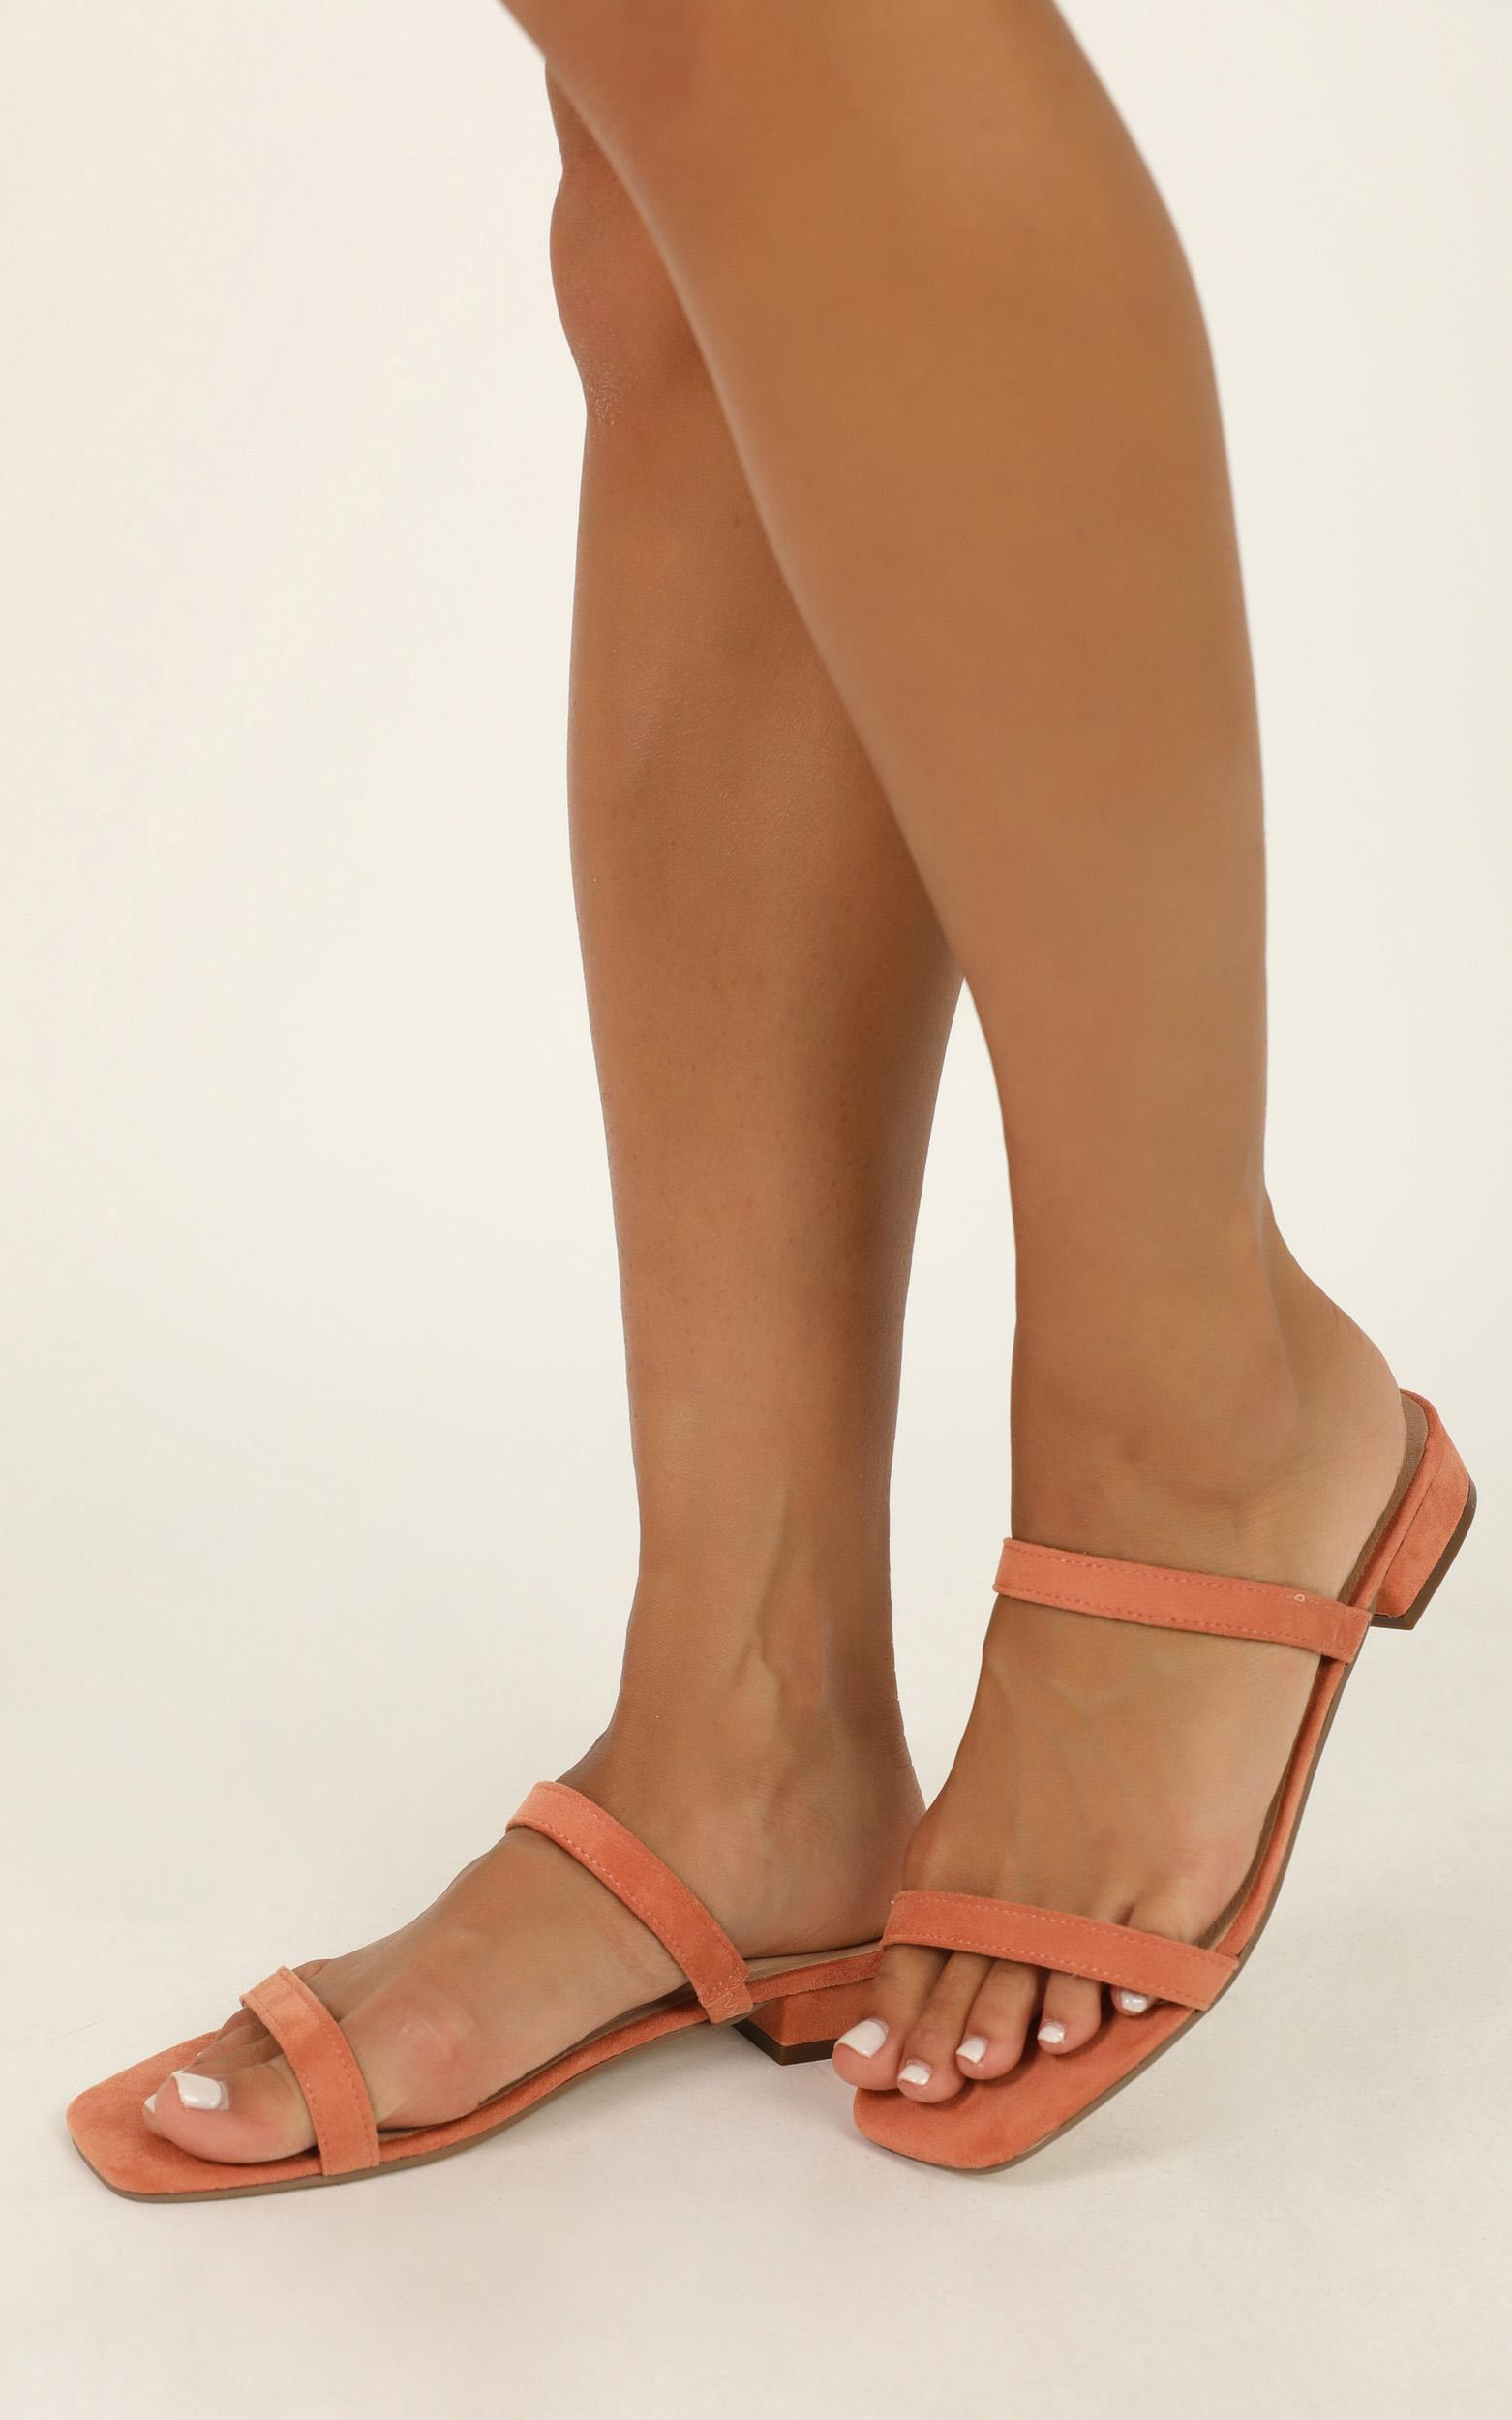 Therapy - Beatrix Sandals in coral - 10, Pink, hi-res image number null